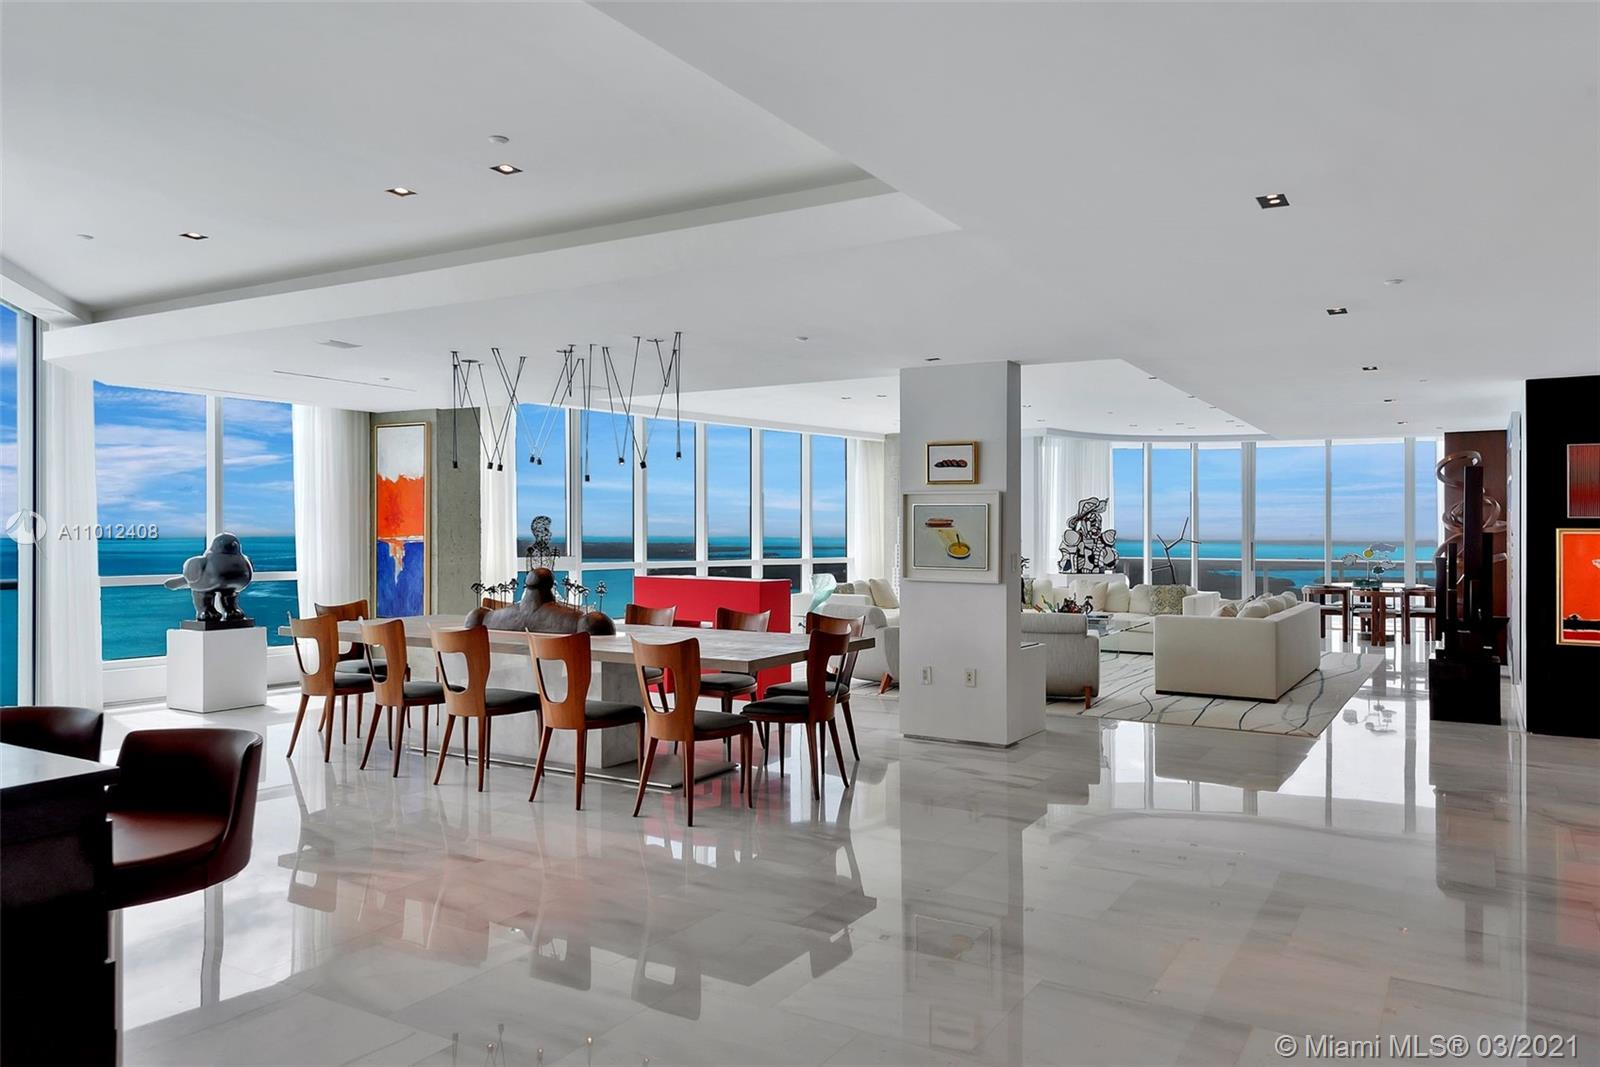 Stepping into this sky mansion one marvels at endless 300 degree views with bright turquoise waters & powder blue skies through 2 story windows speckled with sparkling sunlight. Intelligently designed & turnkey this 8229sqft floor plan spans half of the 36th floor of the prestigious Continuum South Tower. One wing of this show place is a two-story Master bedroom with beach views one can wake up to luminous sunrises all in a luxurious setting. Generous balconies in a garden setting enhance each room. Experience sunrises & sunsets from the vast living room. 6 bedrooms featuring stunning layered fisher island & downtown Miami City views. With a movie theater 2 entertainer's kitchens and bar, this opulent masterpiece home is where a family can congregate knowing it just doesn't get any better.